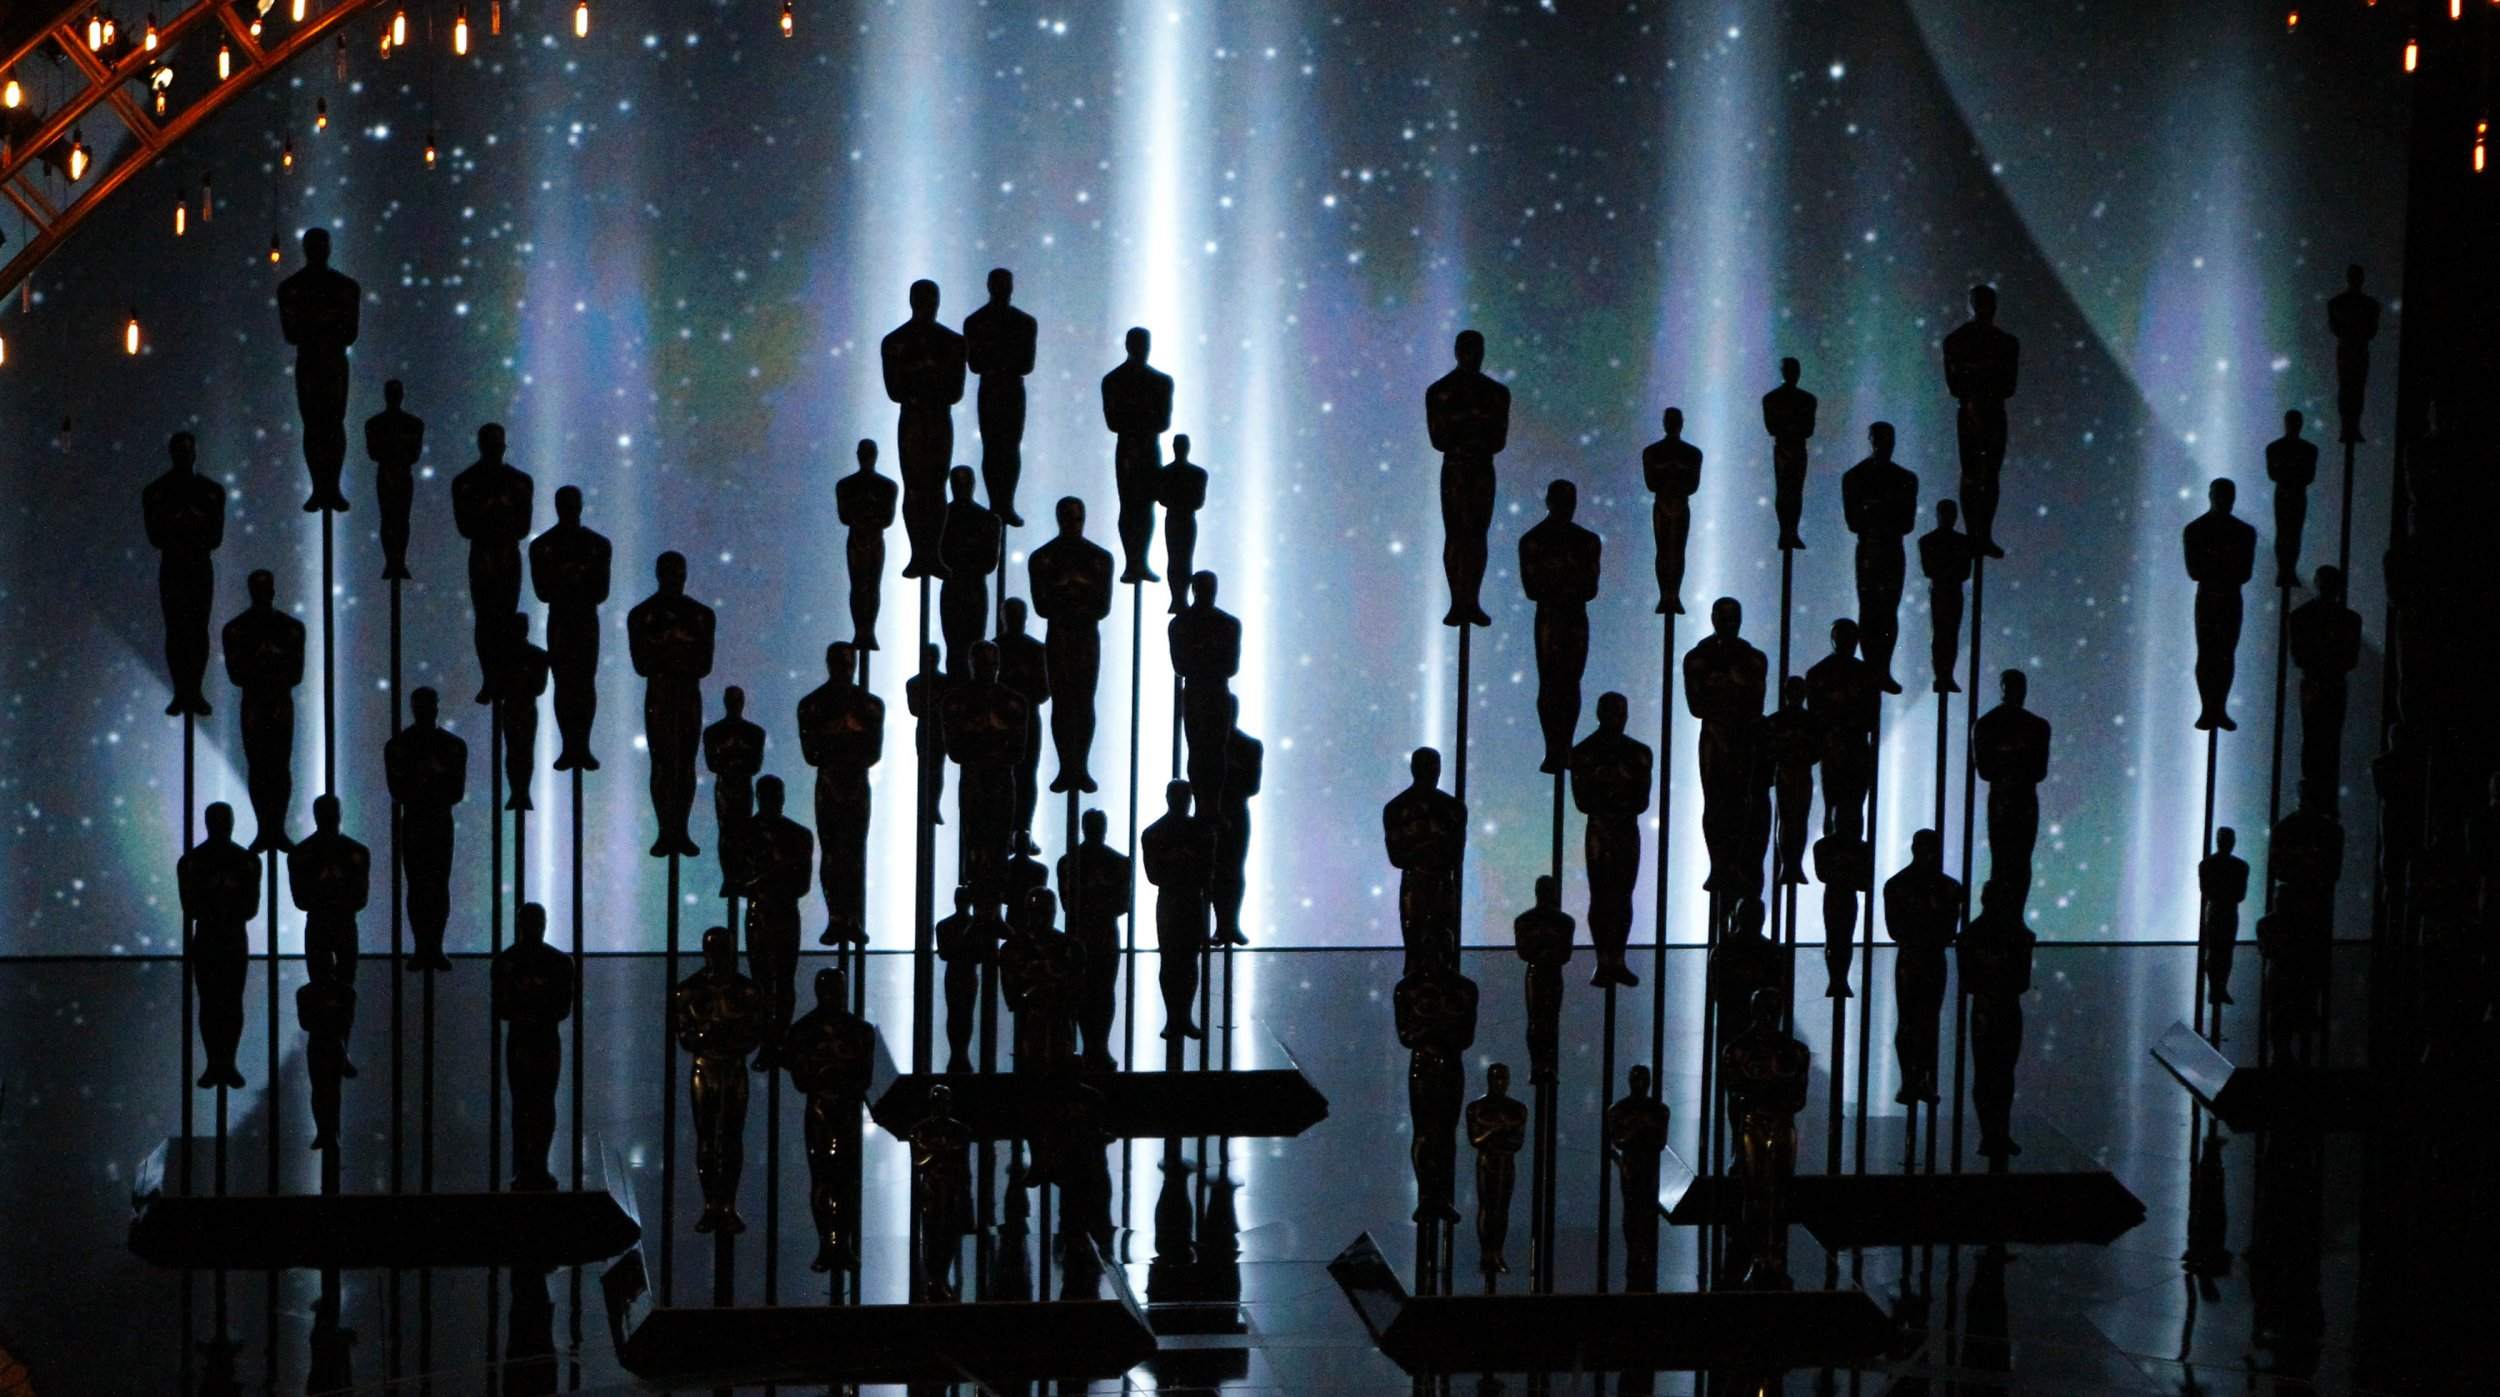 Winners 87th Annual Academy Awards 308708 further Jennifer Aniston Honoured People Magazine Awards Continues Oscar C aign Cake additionally Adele 20694679 as well 9780743277709 besides Birdman Movie Poster. on oscar award winners best picture